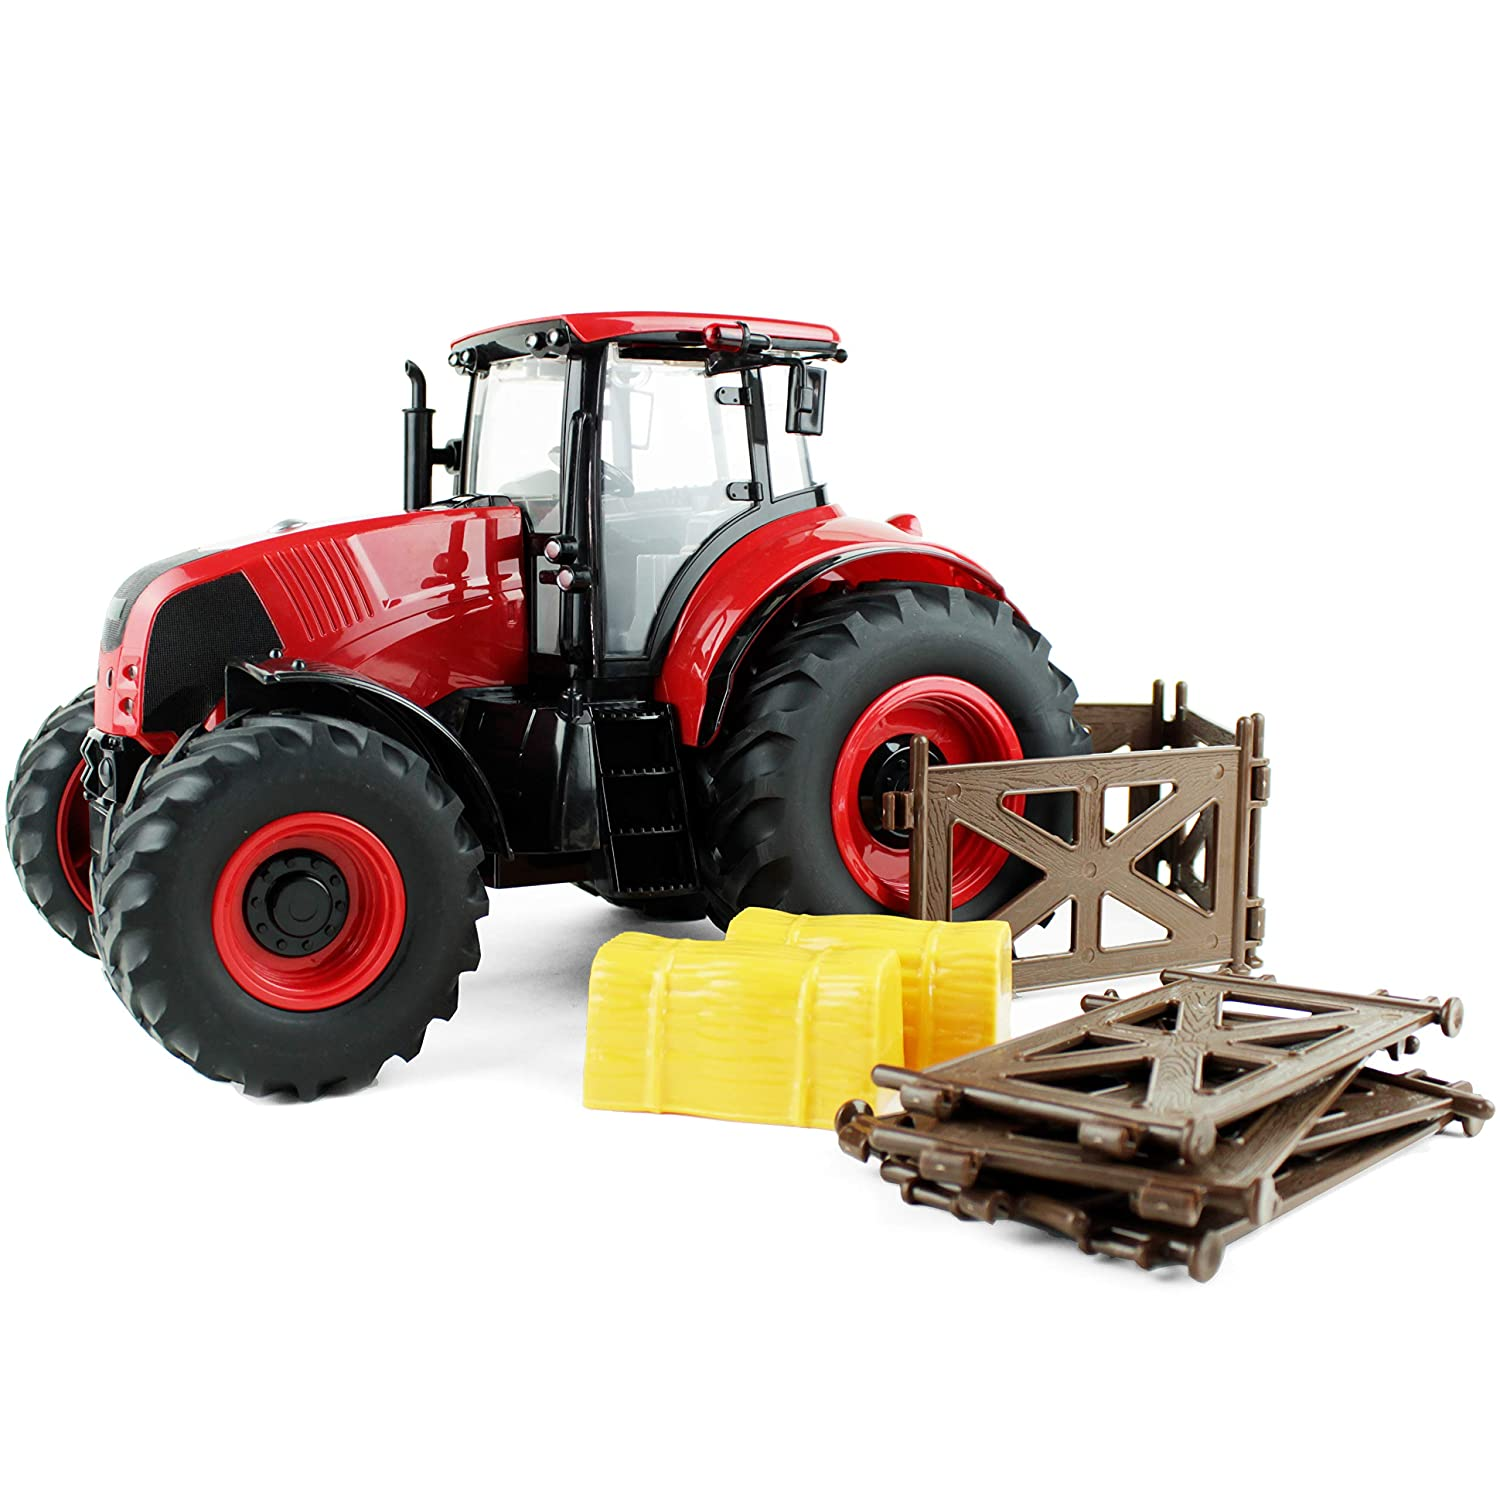 Lights Up and Makes Sounds Boley Red Farm Tractor Toy Farm Tractor Car with Hay Bales and Barn Gates